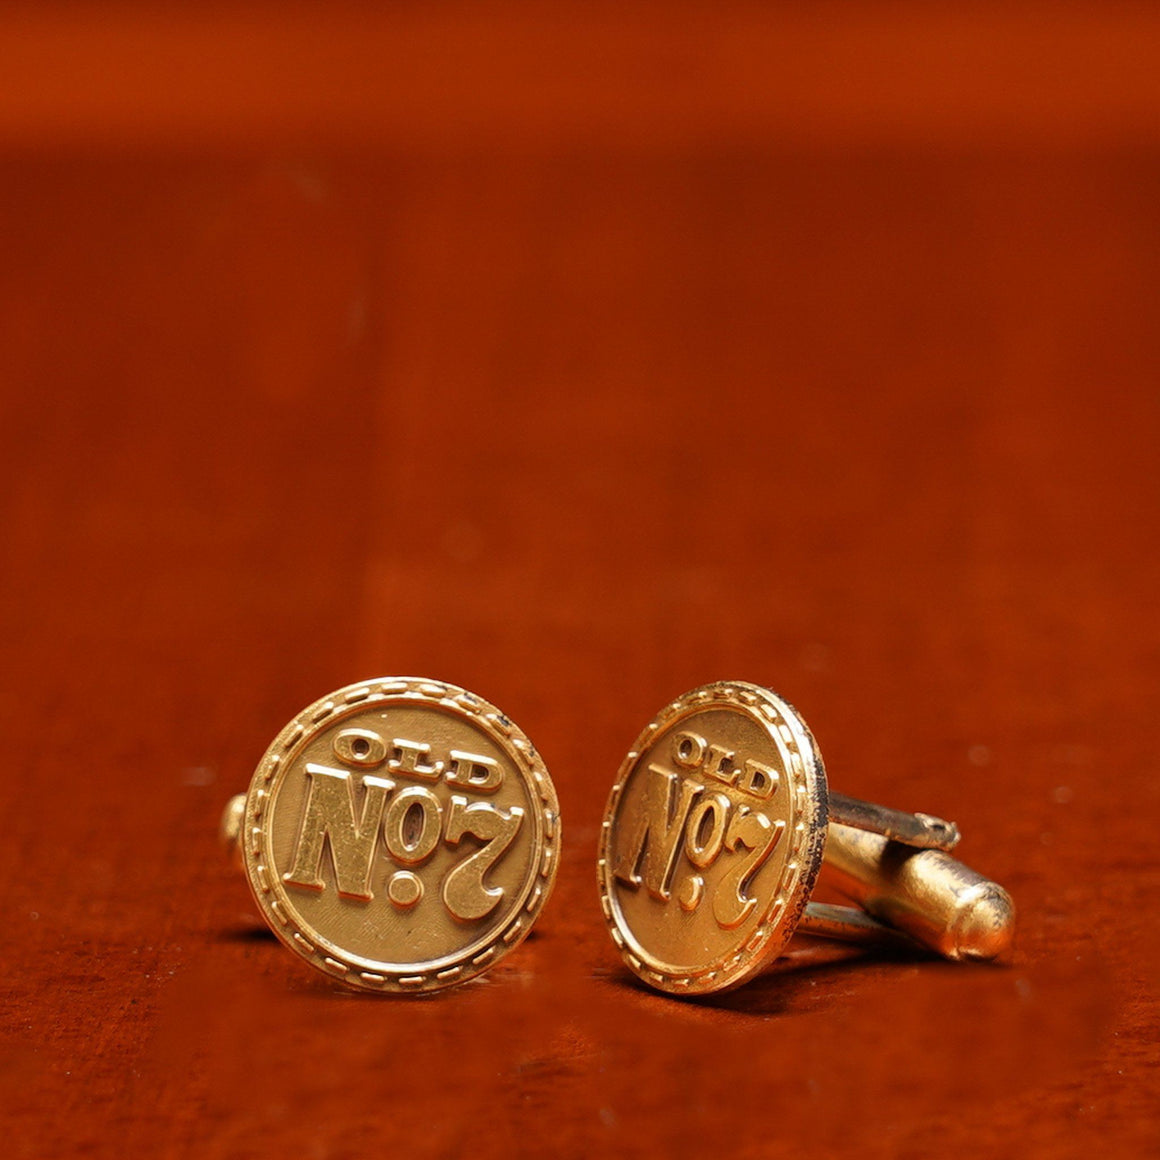 Jack Daniels 1970's set of Old No 7 Cufflinks at The Whiskey Cave